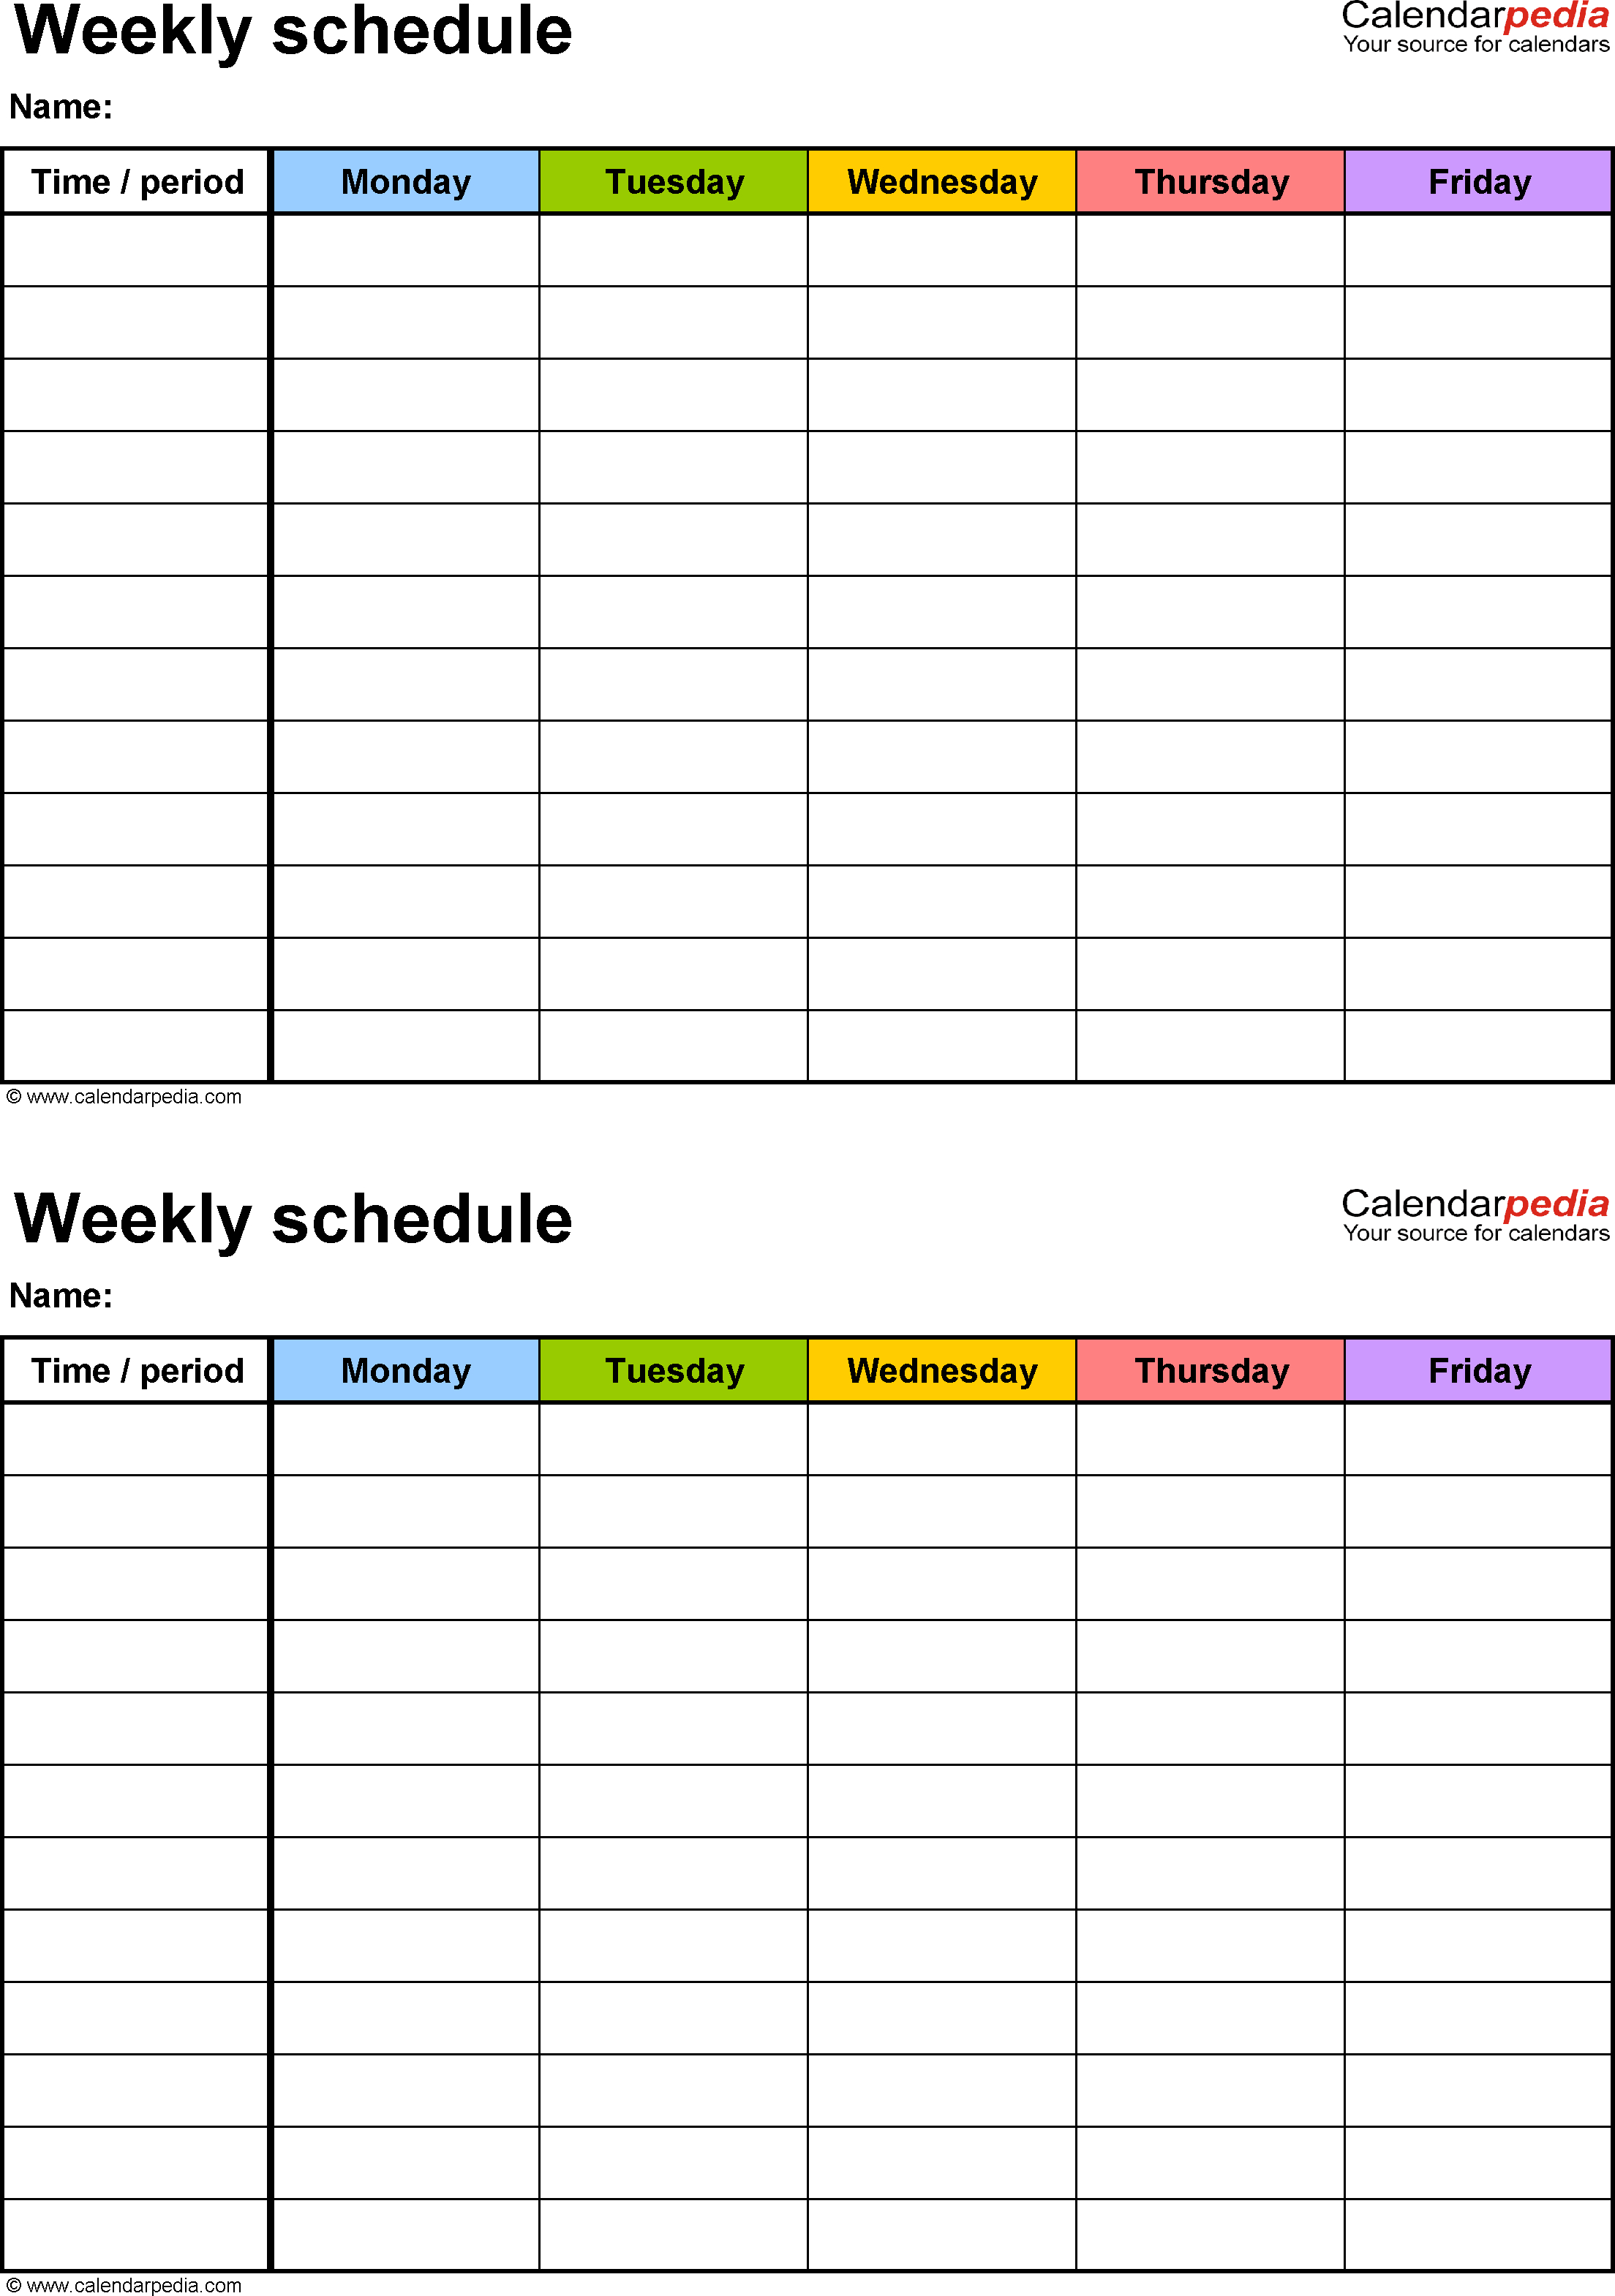 Free Weekly Schedule Templates For Word - 18 Templates with regard to 7 Day Calendar Template Free